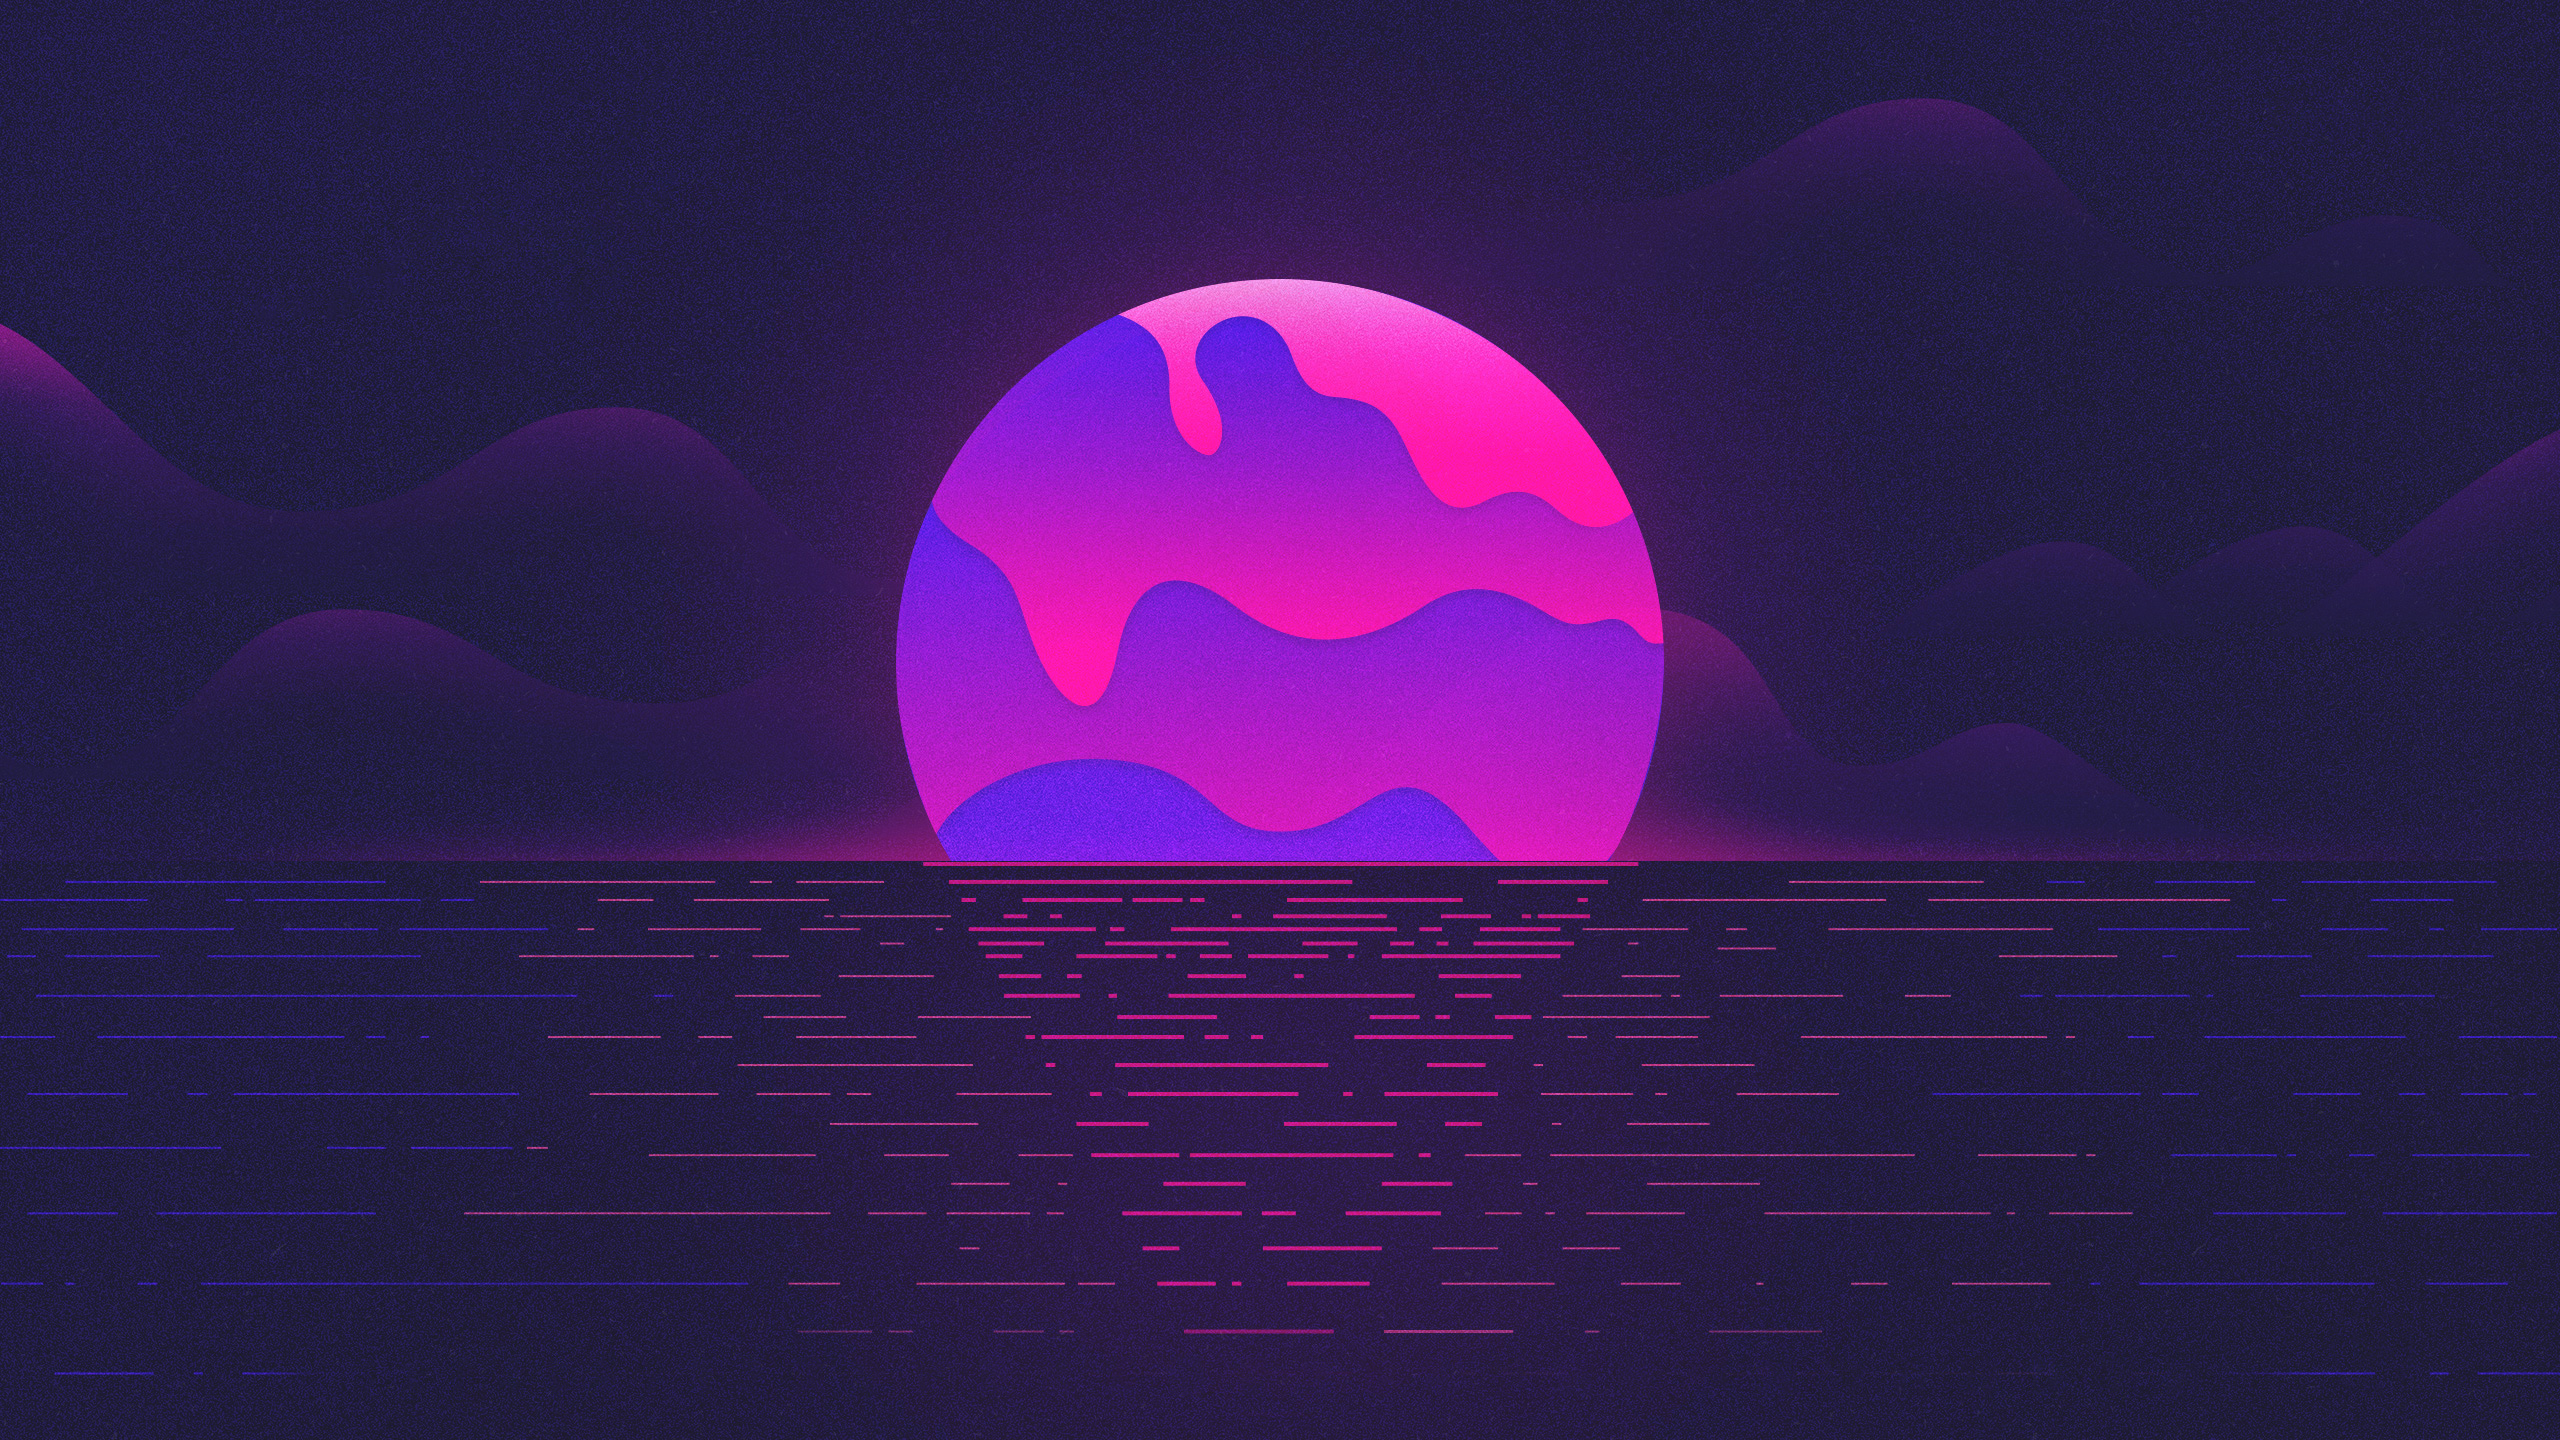 Vaporwave Hd Wallpapers Posted By Christopher Tremblay